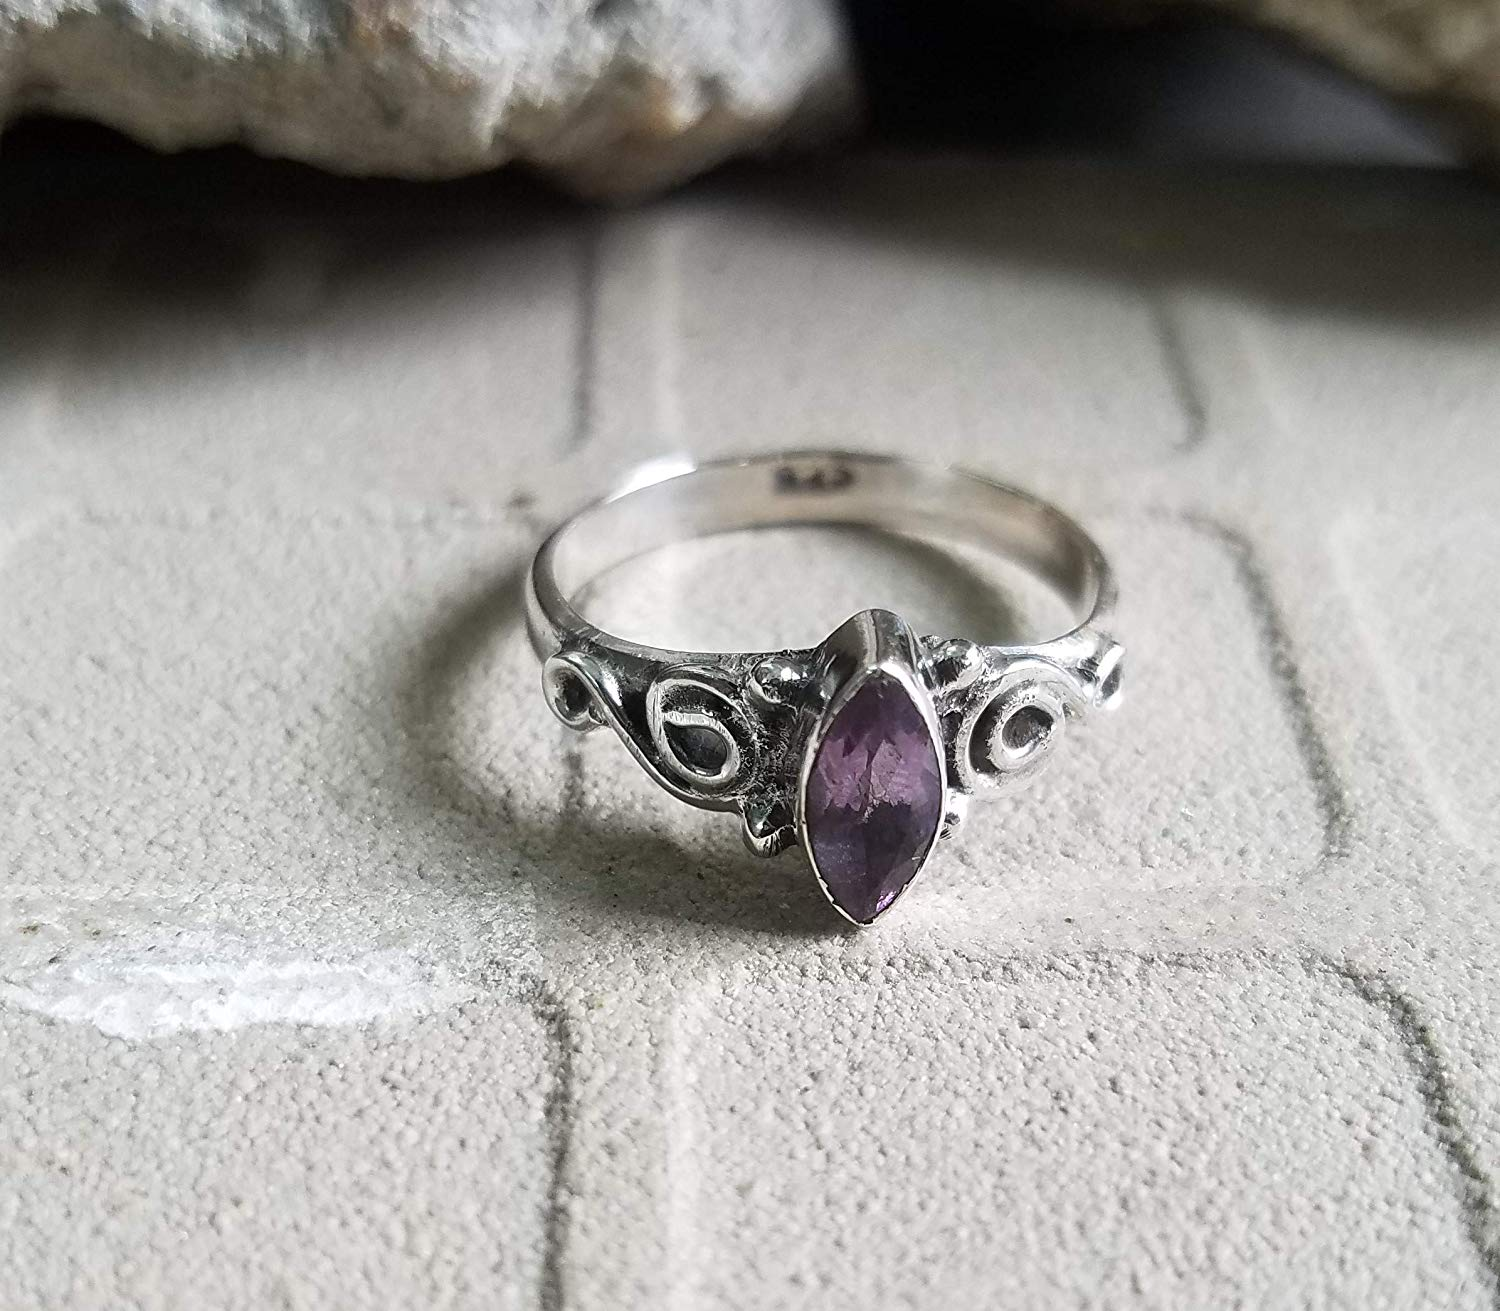 Amethyst Ring.925 Sterling Silver.Outstanding Ring.Peaceful Ring.Tiny Ring.Stacking Ring.Solitaire Ring.Dainty Engagement Ring.Extraordinary Ring.6th Anniversary Jewelry.US All Size Ring